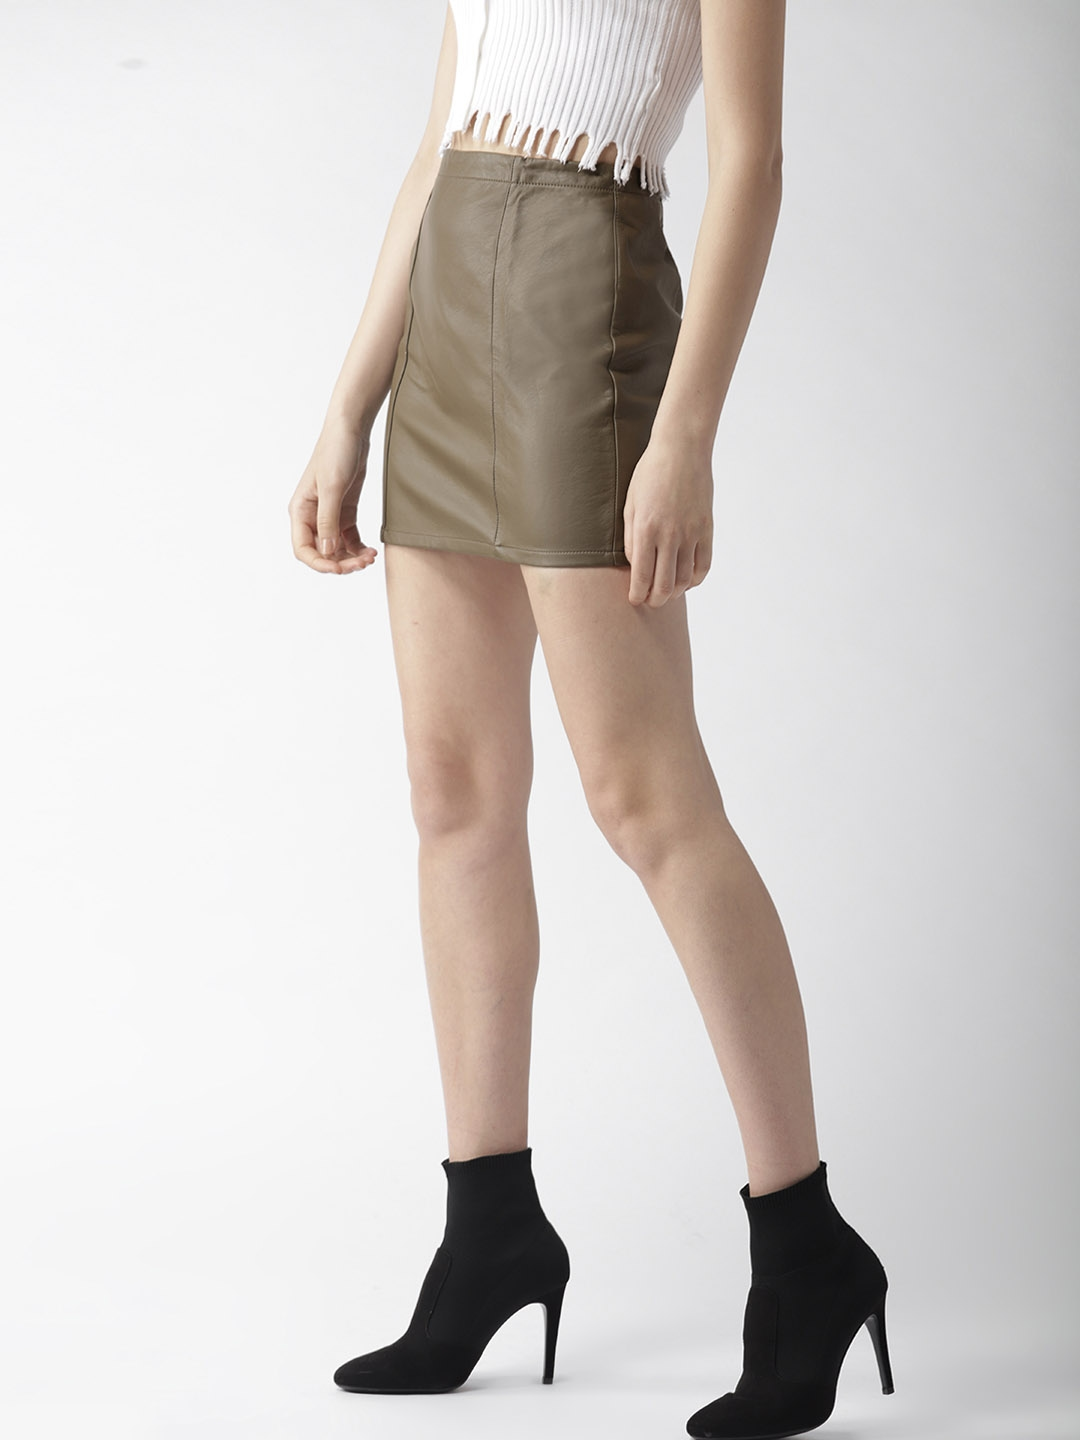 7092920e0 Buy FOREVER 21 Olive Brown Faux Leather Mini A Line Skirt - Skirts ...